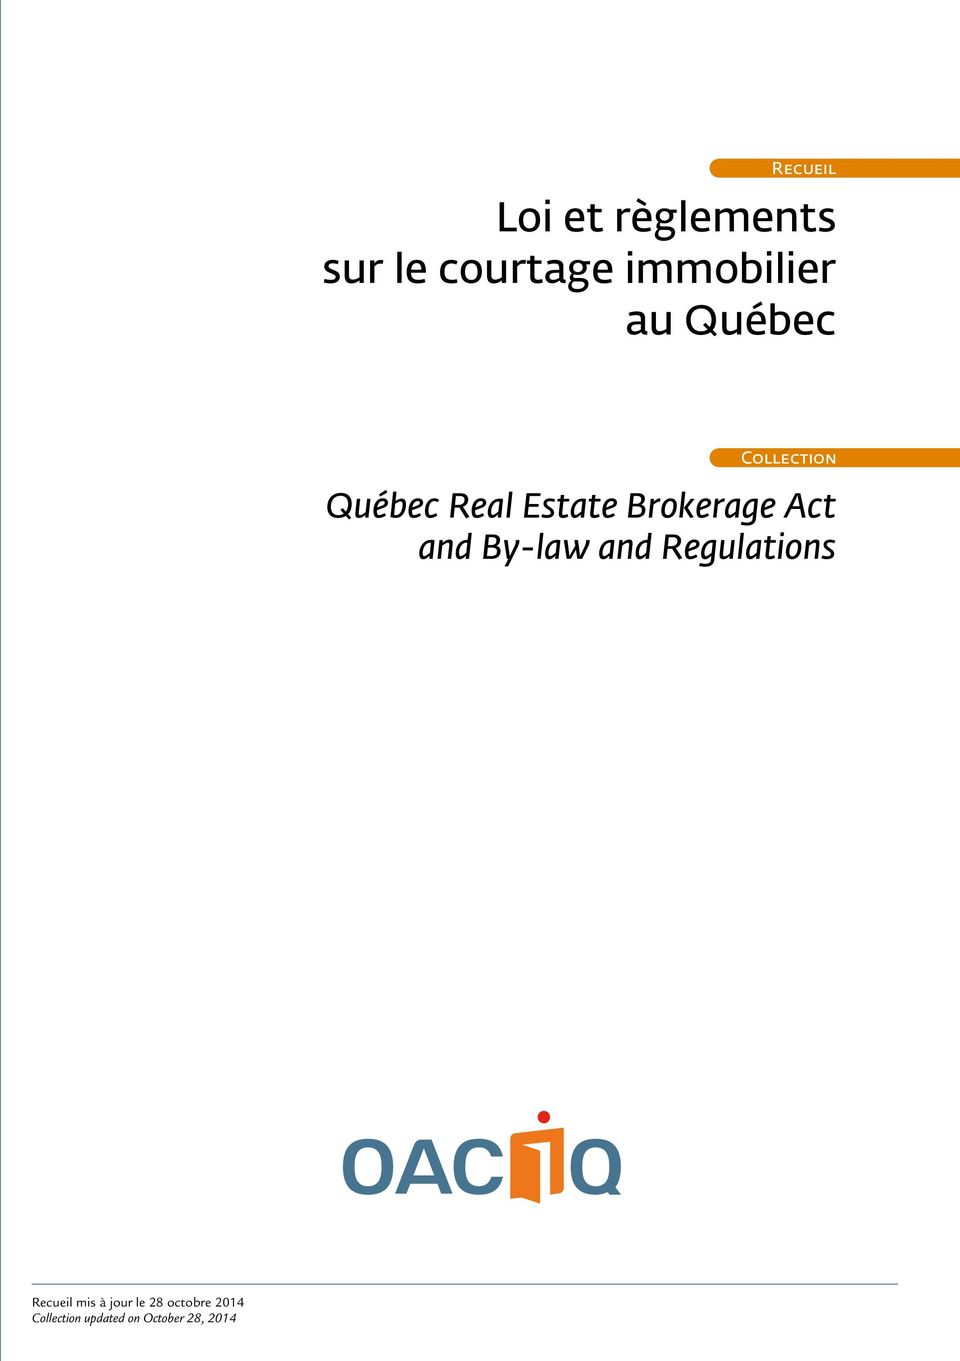 Brokerage Act and By-law and Regulations (second edition)